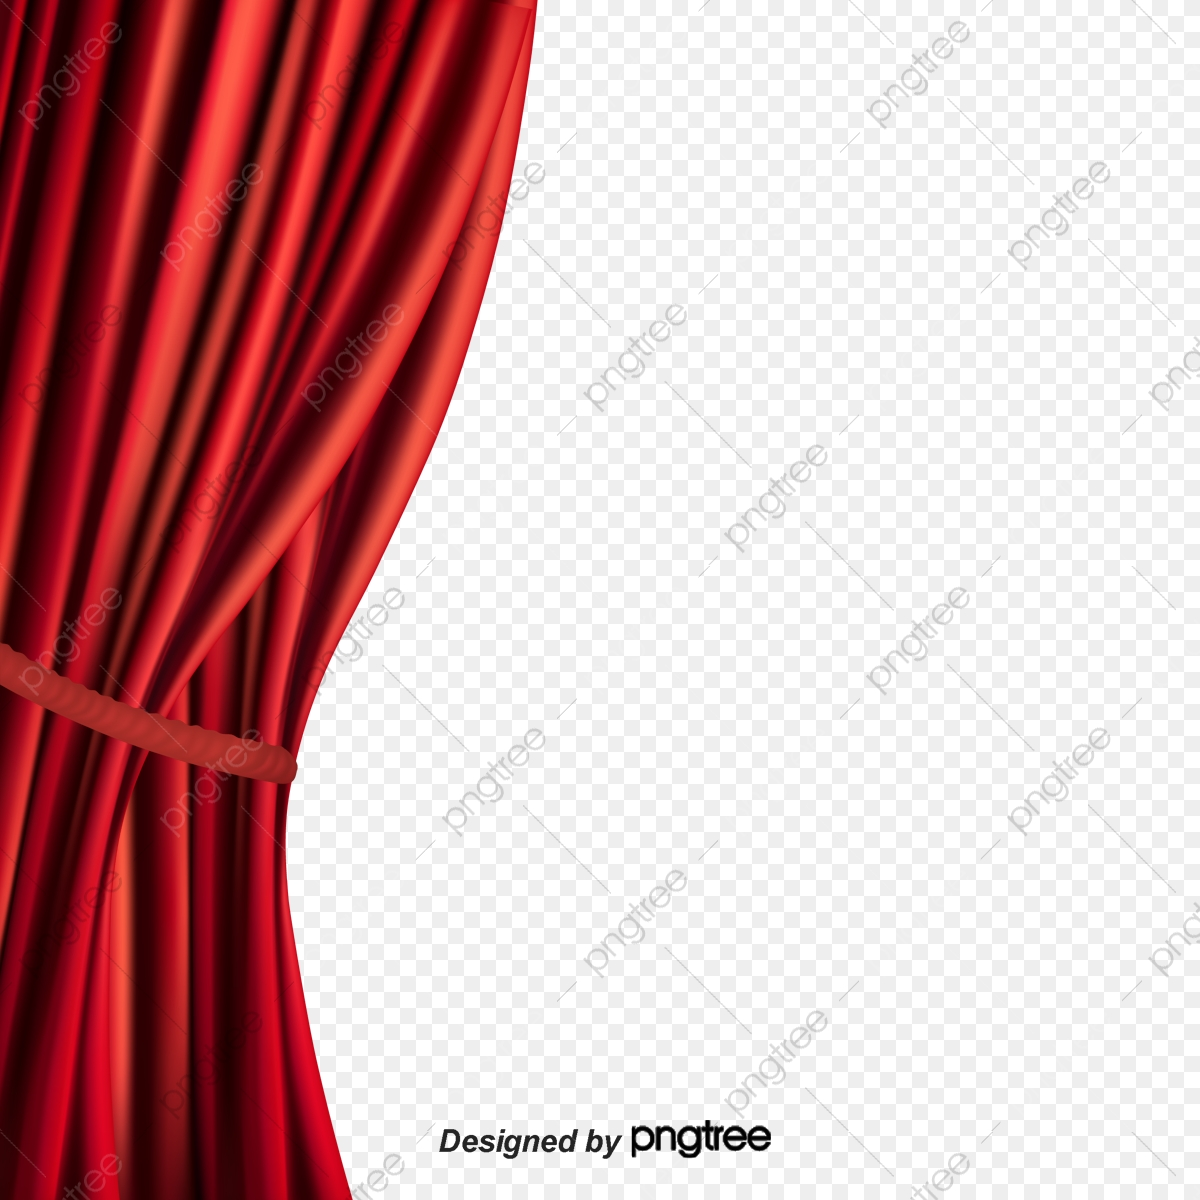 hight resolution of commercial use resource upgrade to premium plan and get license authorization upgradenow curtain drapes stage curtain png image and clipart